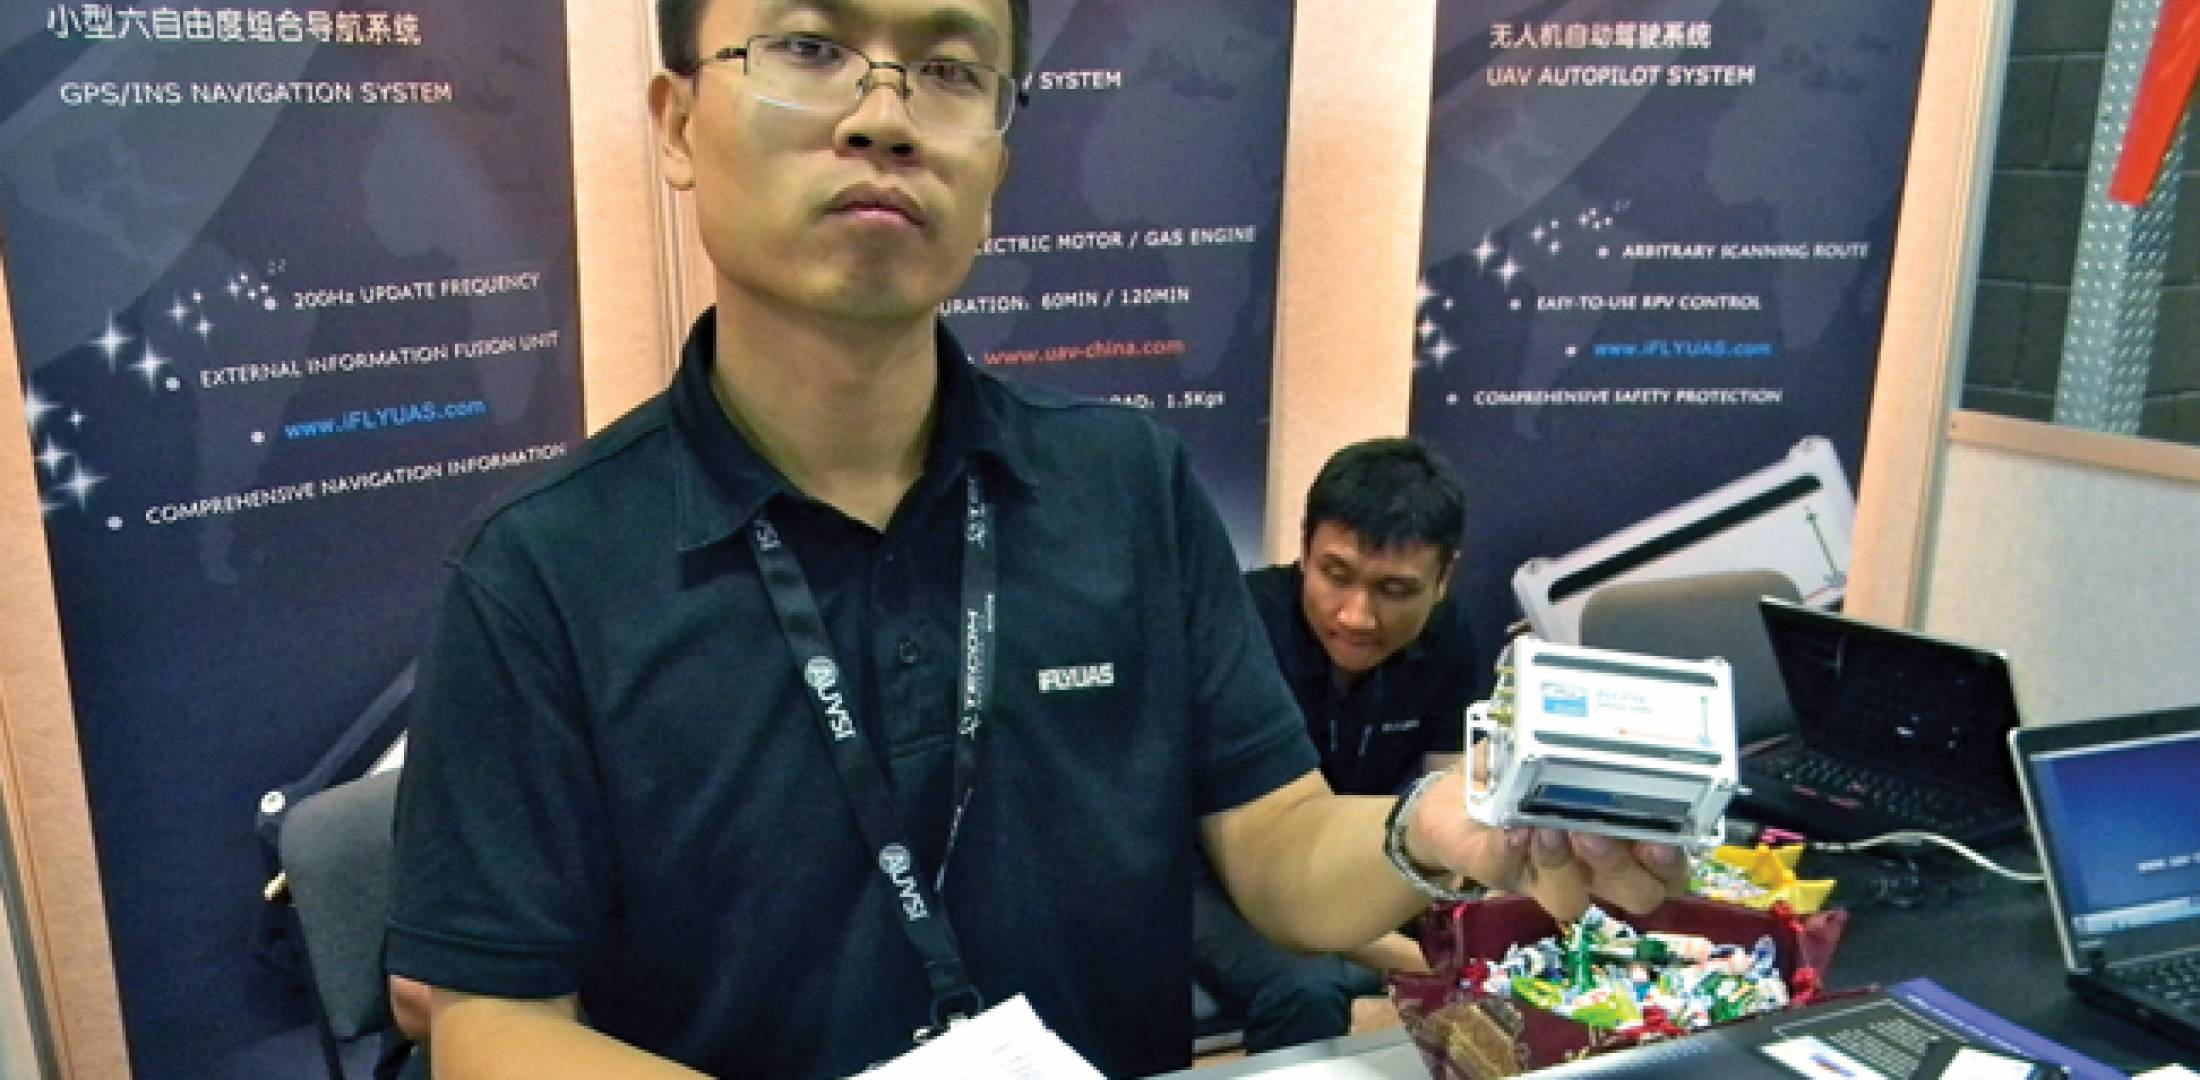 Li Xiaoyu, iFlyUAS general manager, displays the miniature autopilot used in the Chinese Creaton T10 unmanned aircraft system.